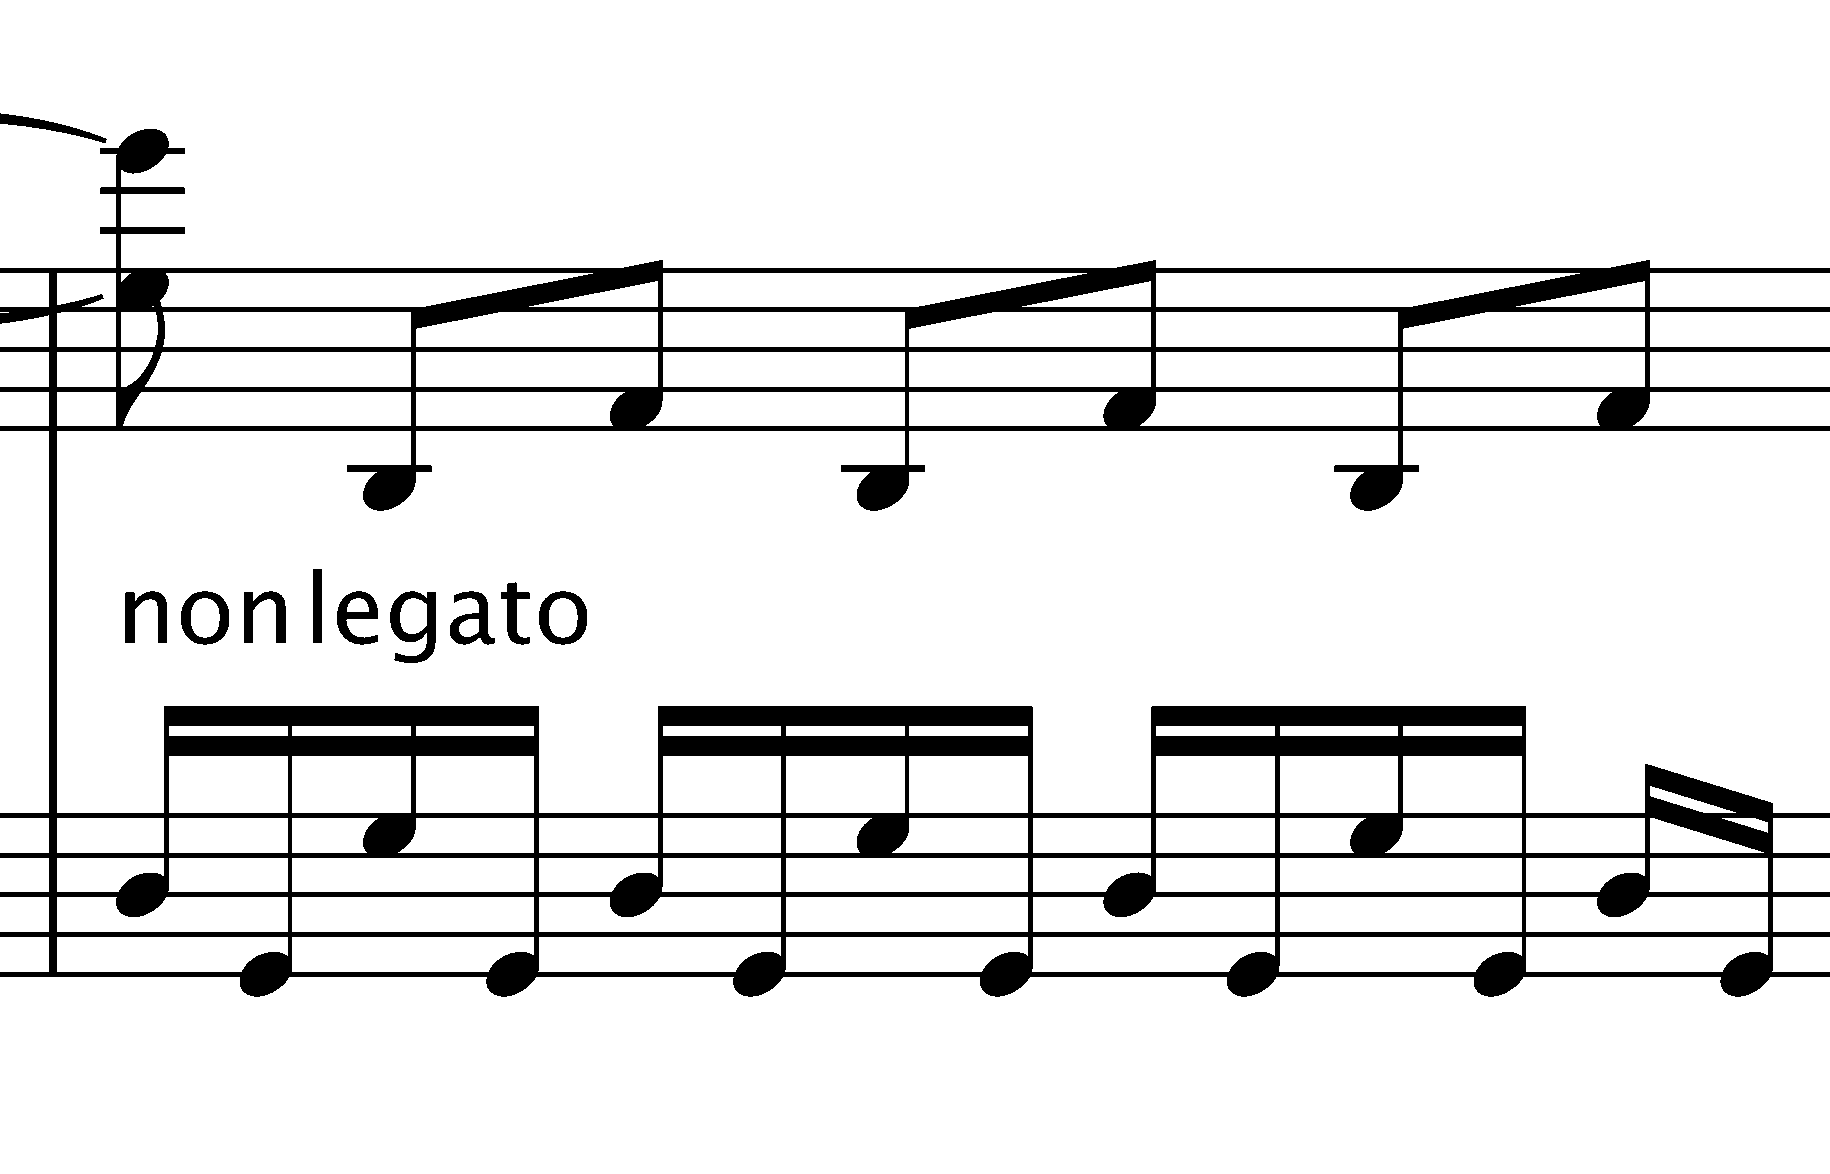 non-legato on the piano